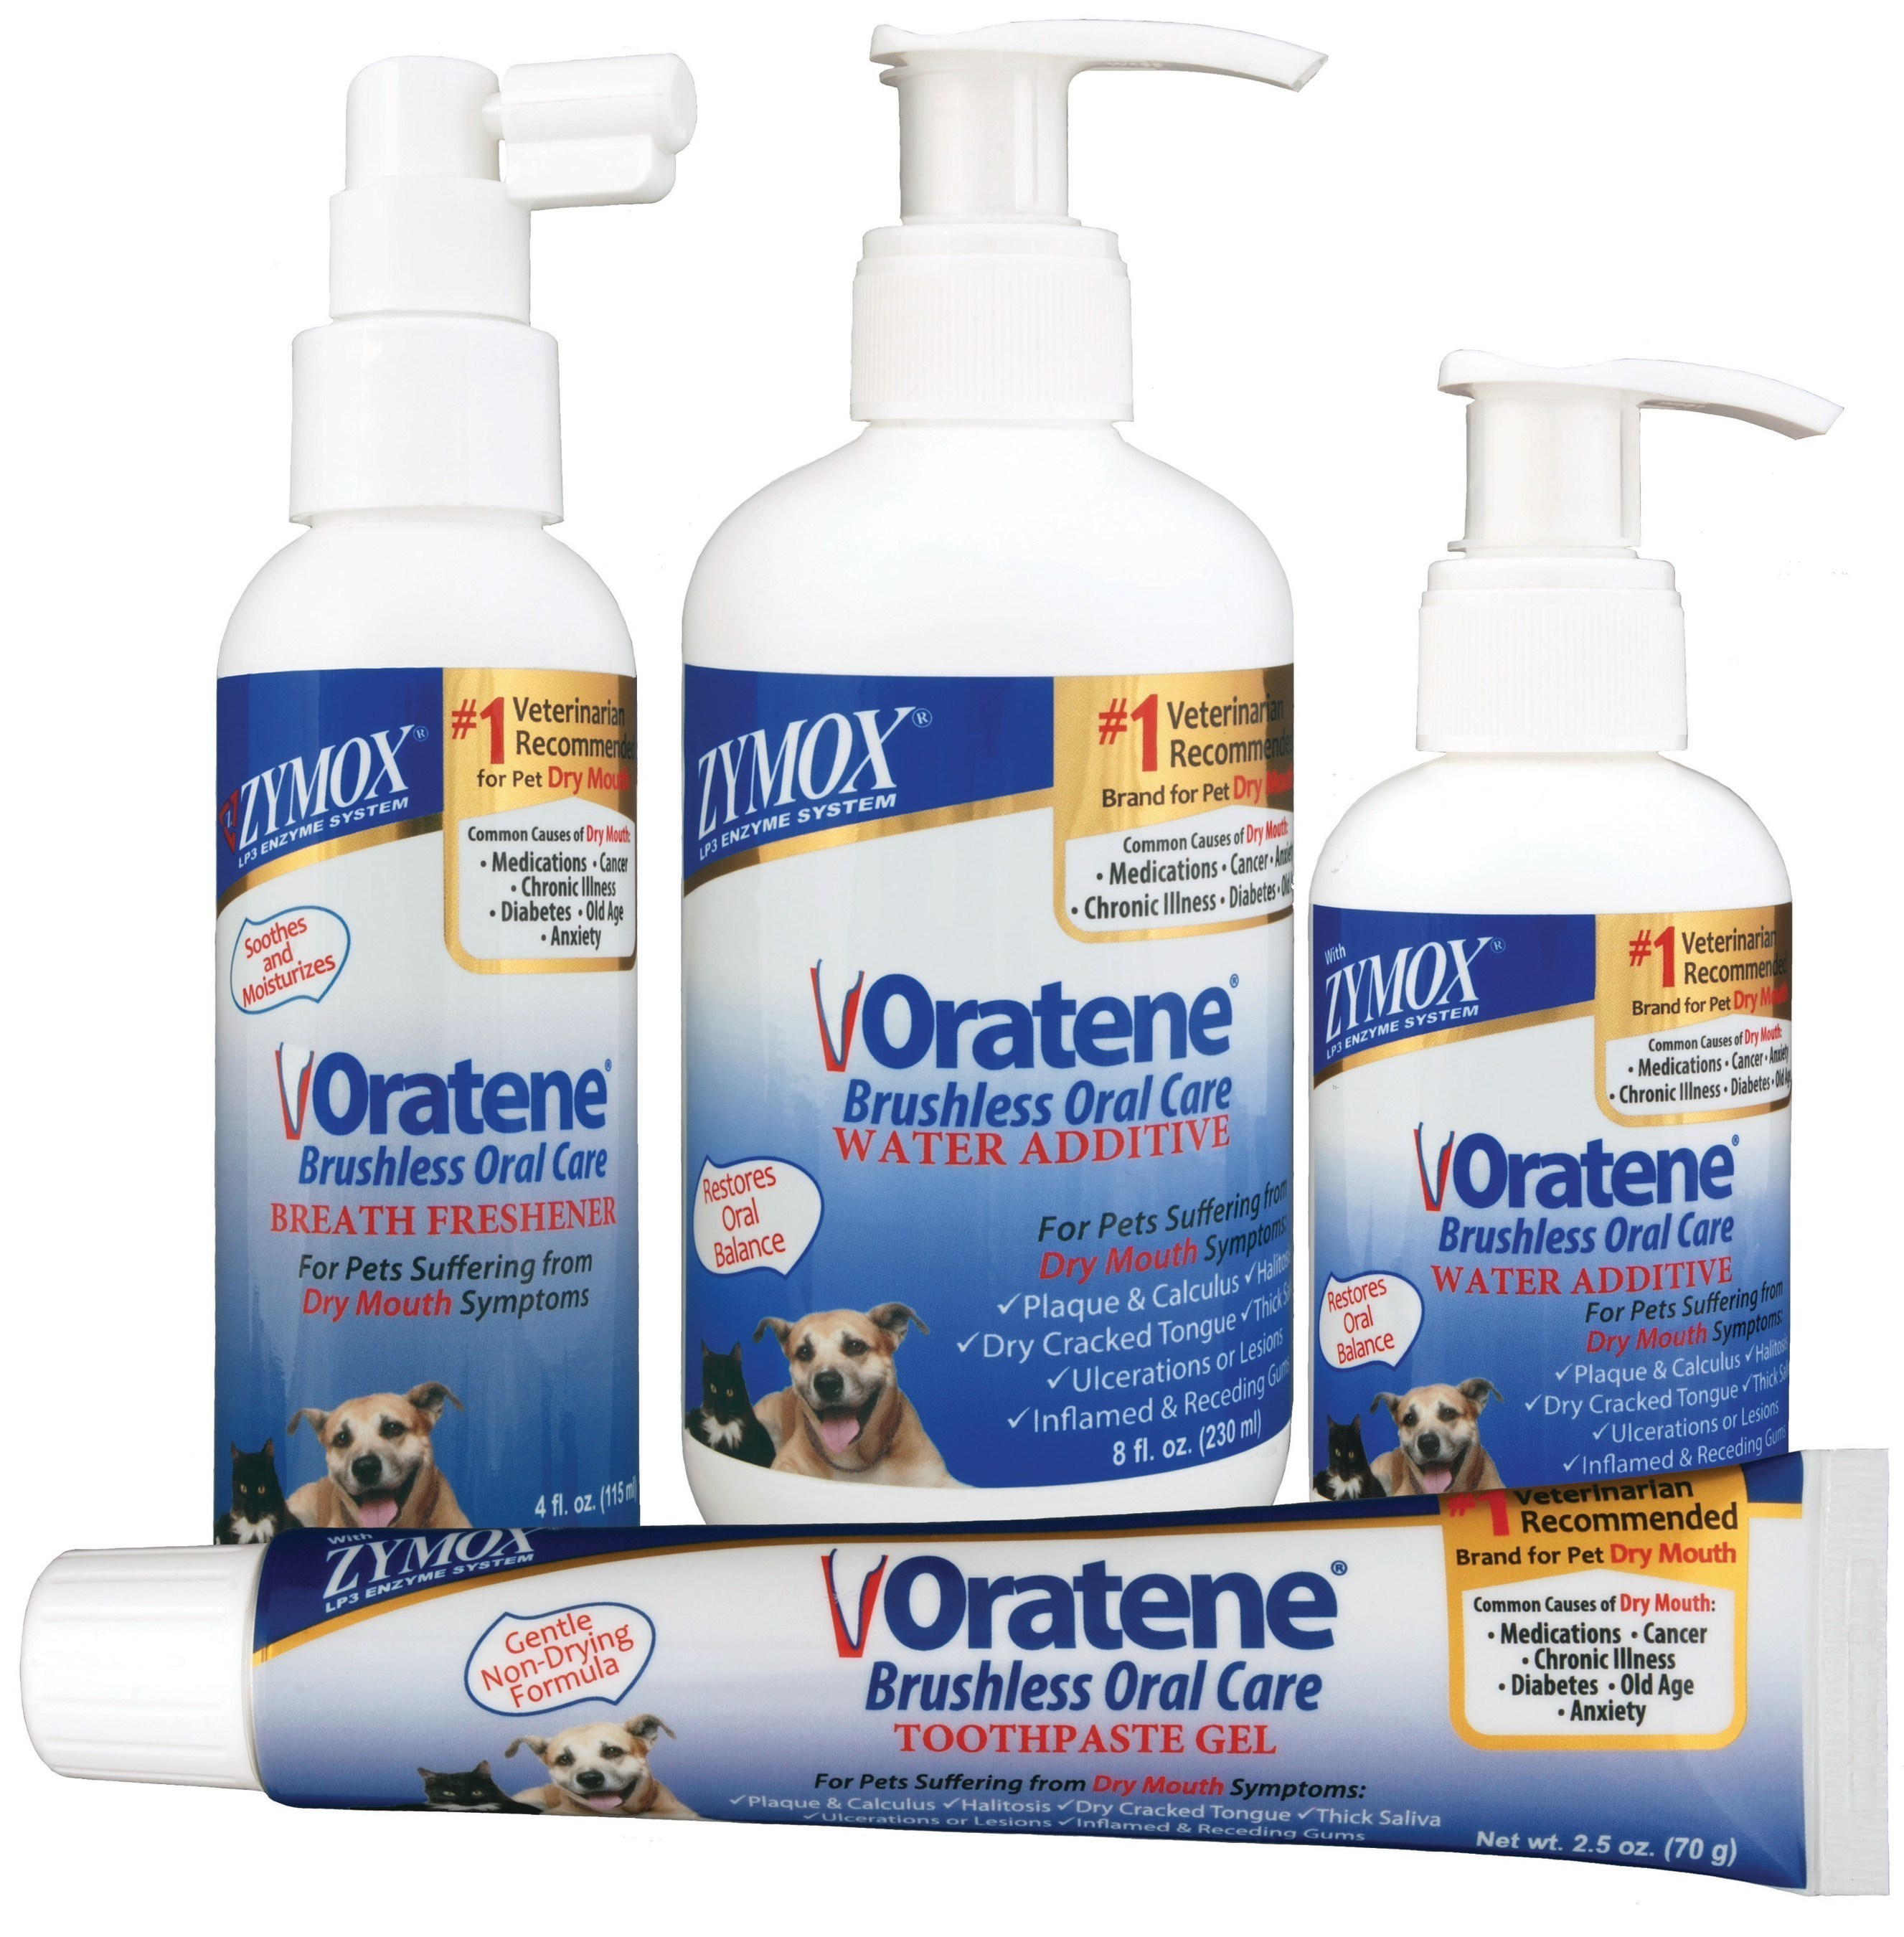 ZYMOX Oratene Brushless Oral Care for Pets